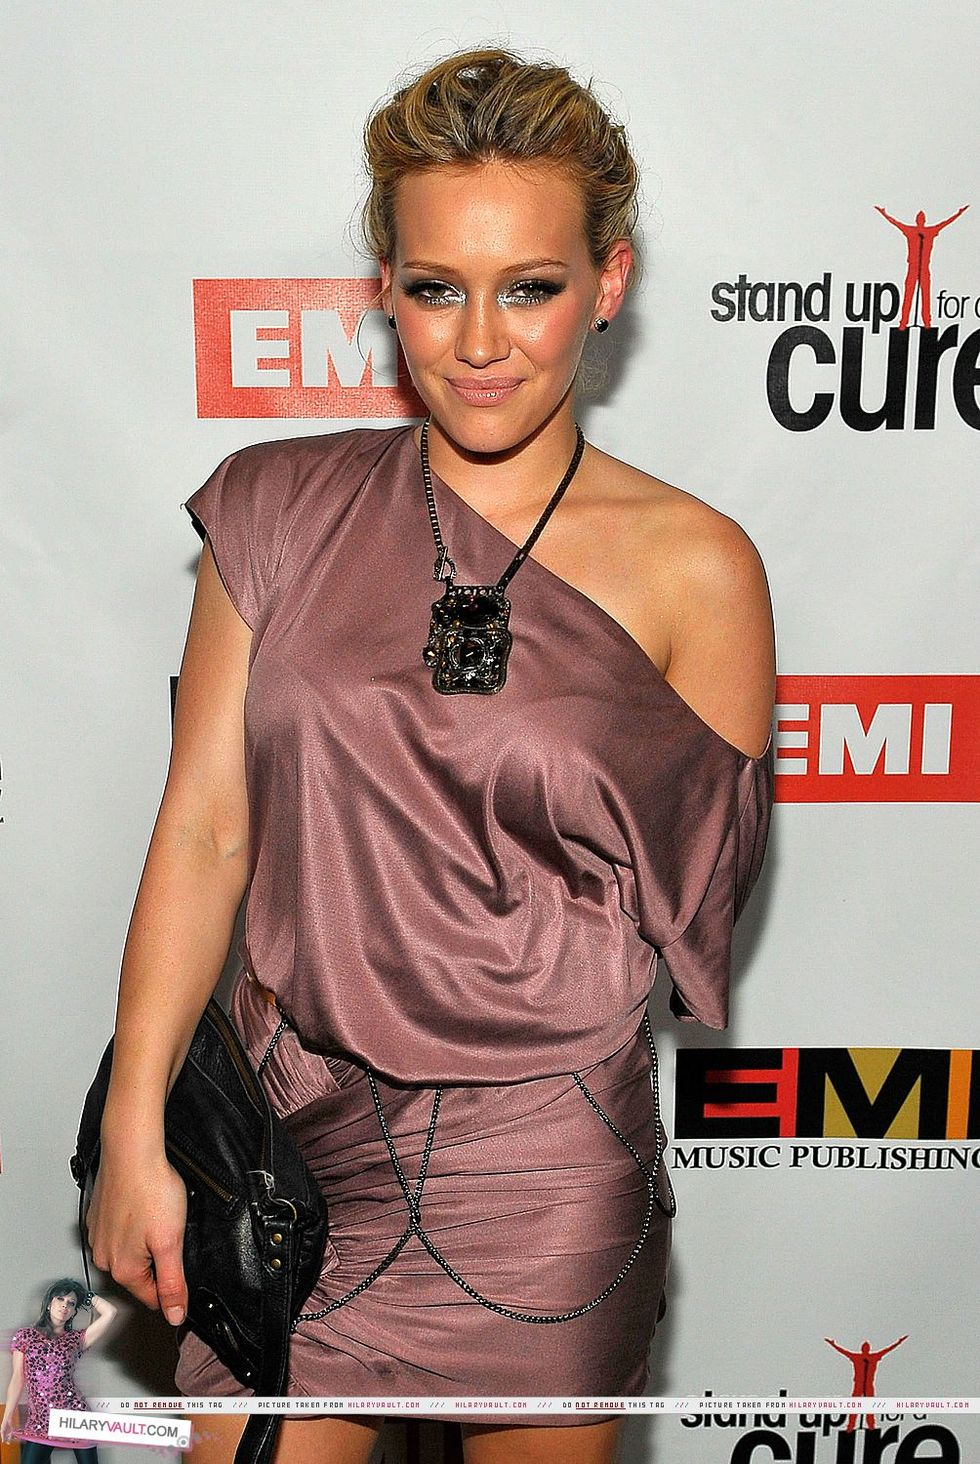 hilary-duff-stand-up-for-a-cure-post-grammy-party-in-beverly-hills-01